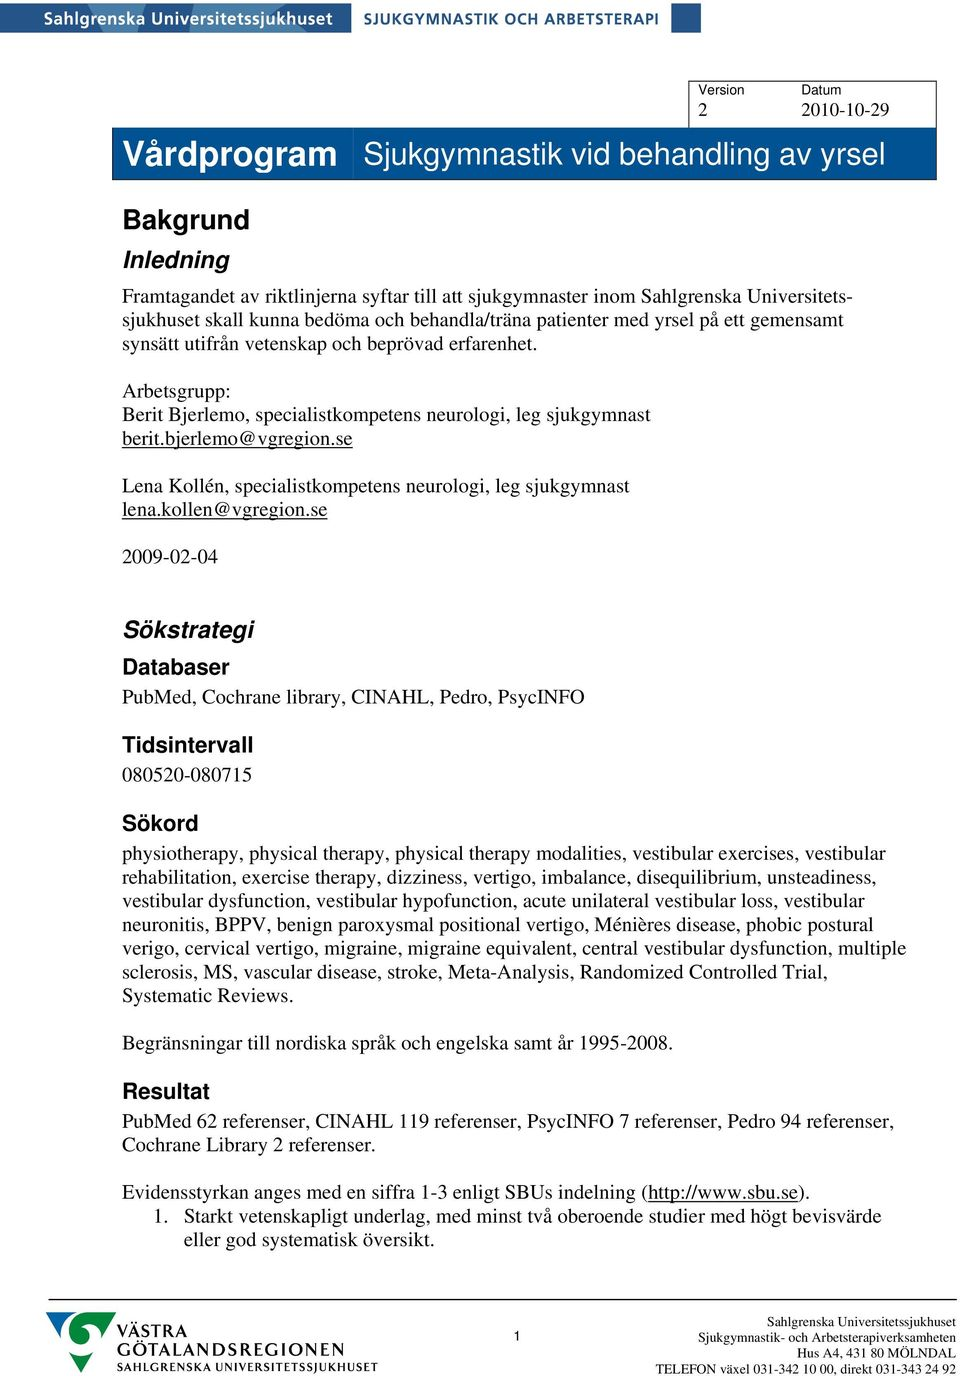 se 2009-02-04 Sökstrategi Databaser PubMed, Cochrane library, CINAHL, Pedro, PsycINFO Tidsintervall 080520-080715 Sökord physiotherapy, physical therapy, physical therapy modalities, vestibular